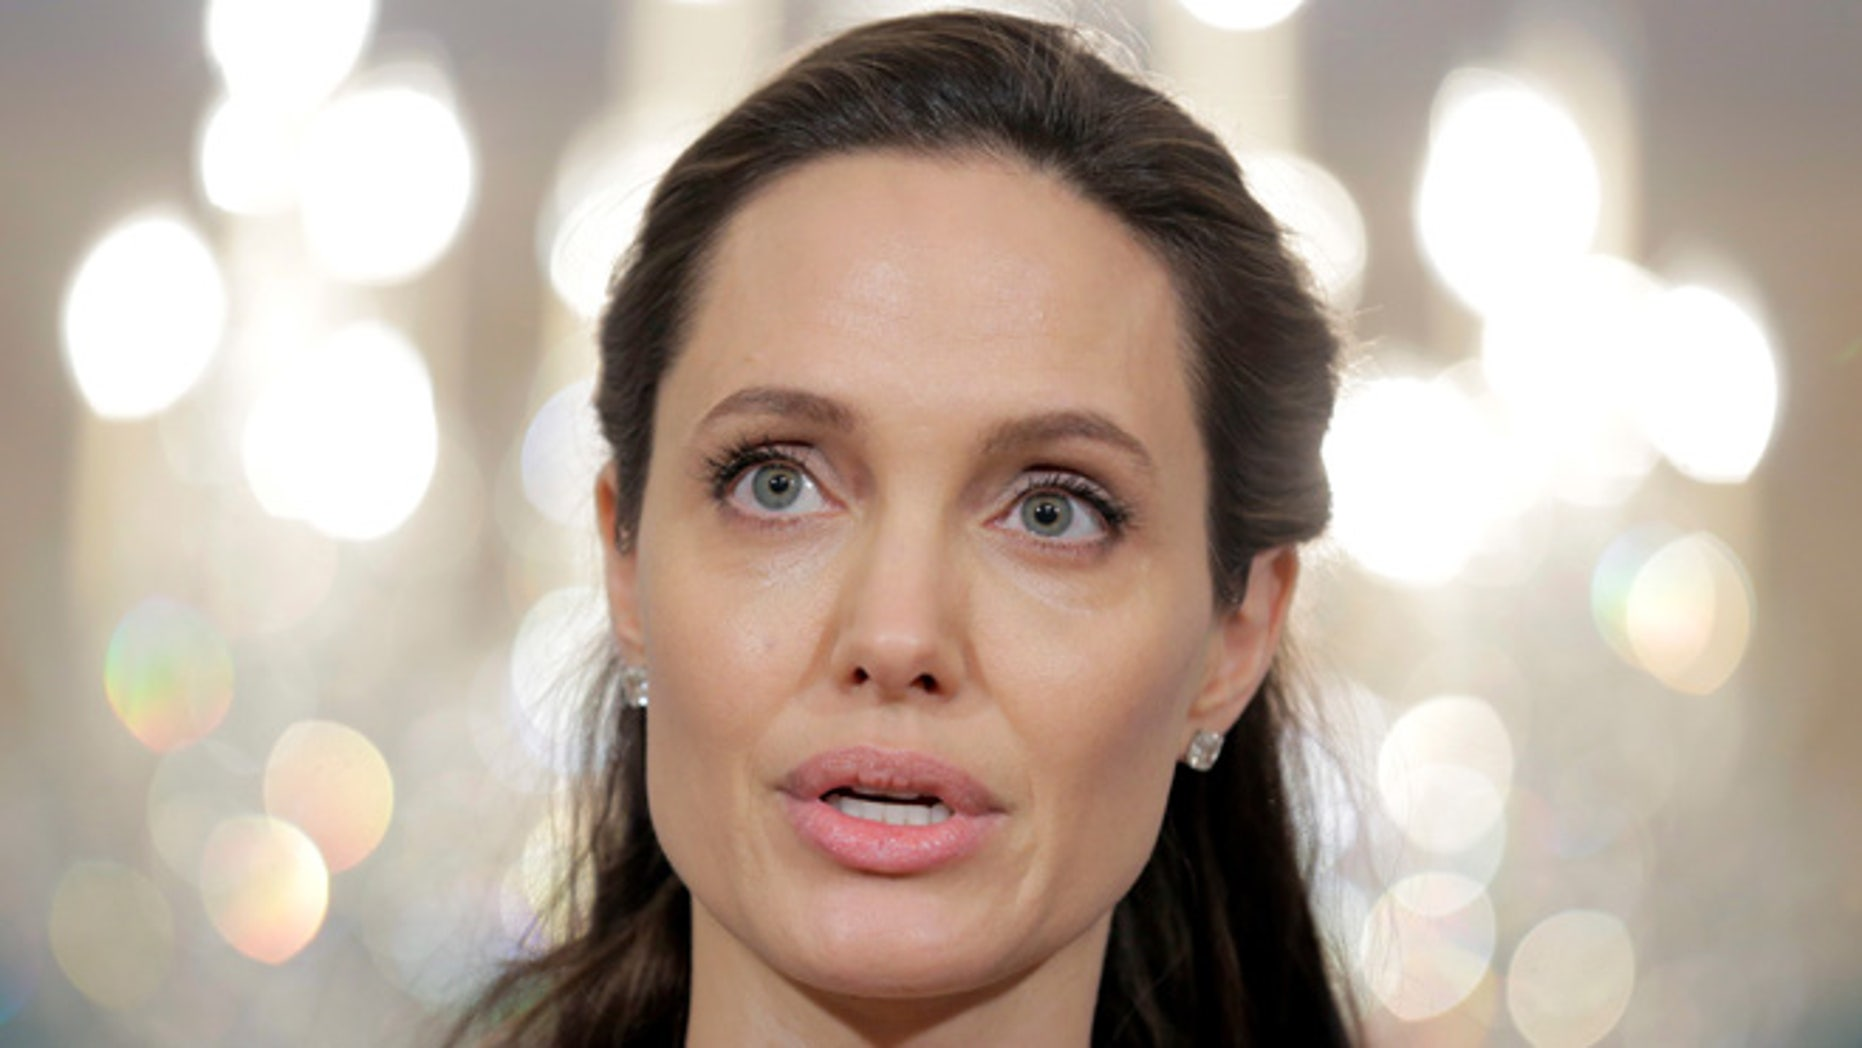 Angelina Jolie has made her first public appearance since her split from Brad Pitt.